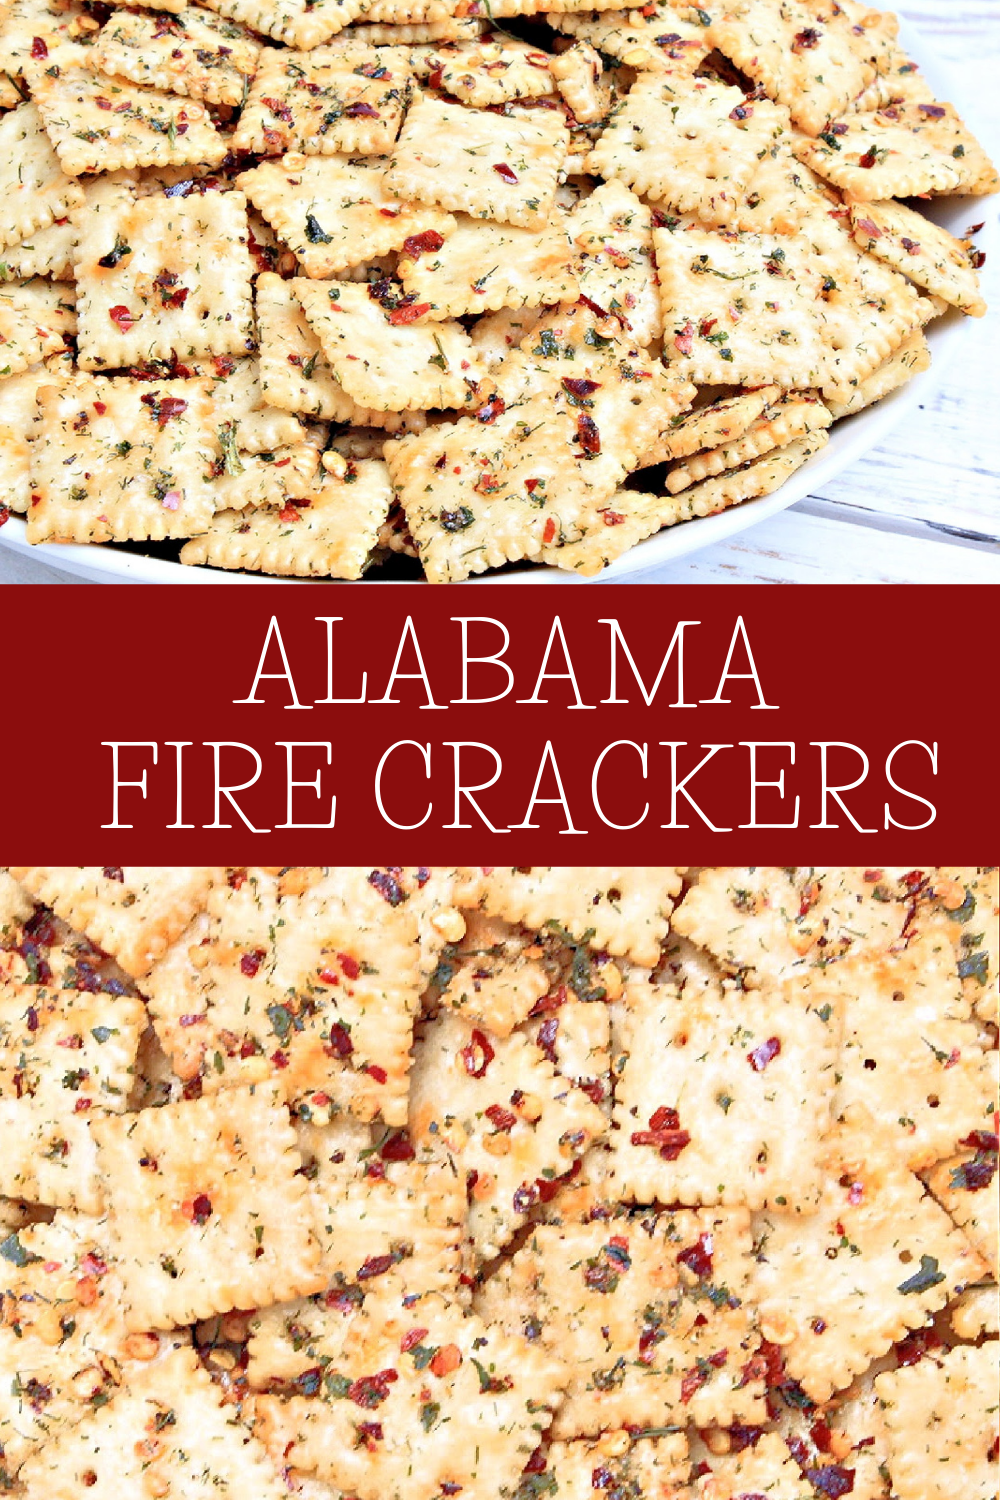 No-Bake and dairy-free Alabama Fire Crackers are loaded with bold and spicy flavor, simple to make, and crazy addictive! Mix up a batch & watch them disappear fast! via @thiswifecooks